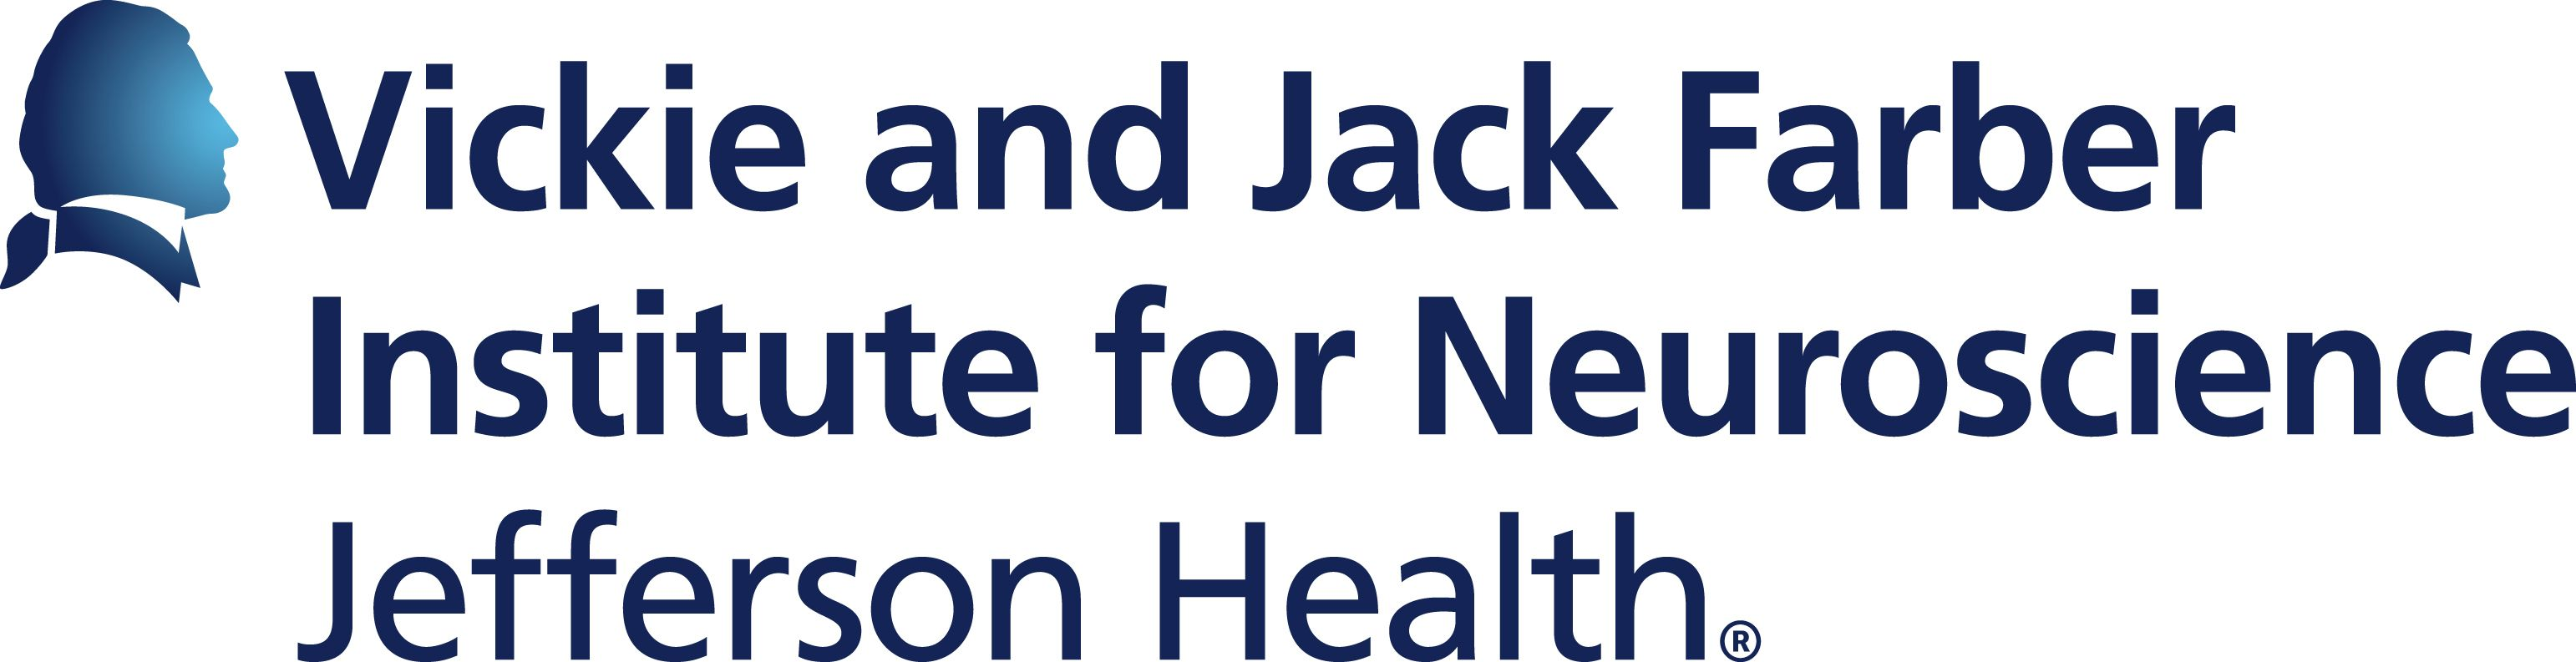 Jefferson Health Vickie and Jack Farber Institute for Neuroscience